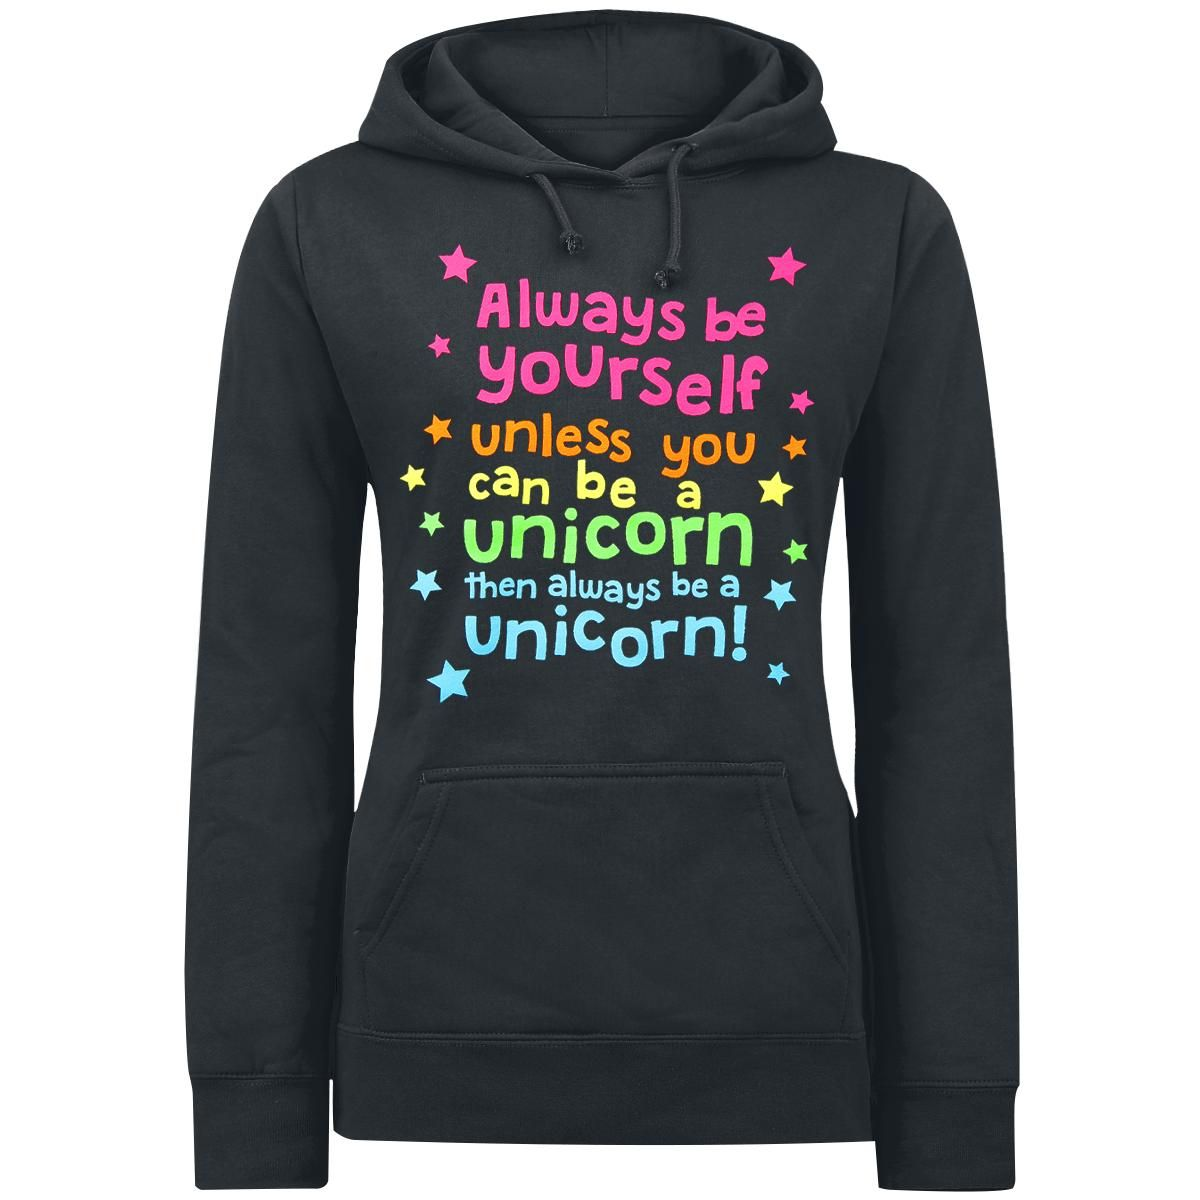 Always Be Yourself, Always Be Yourself Unless You Can Be A Unicorn Then Always Be A Unicorn